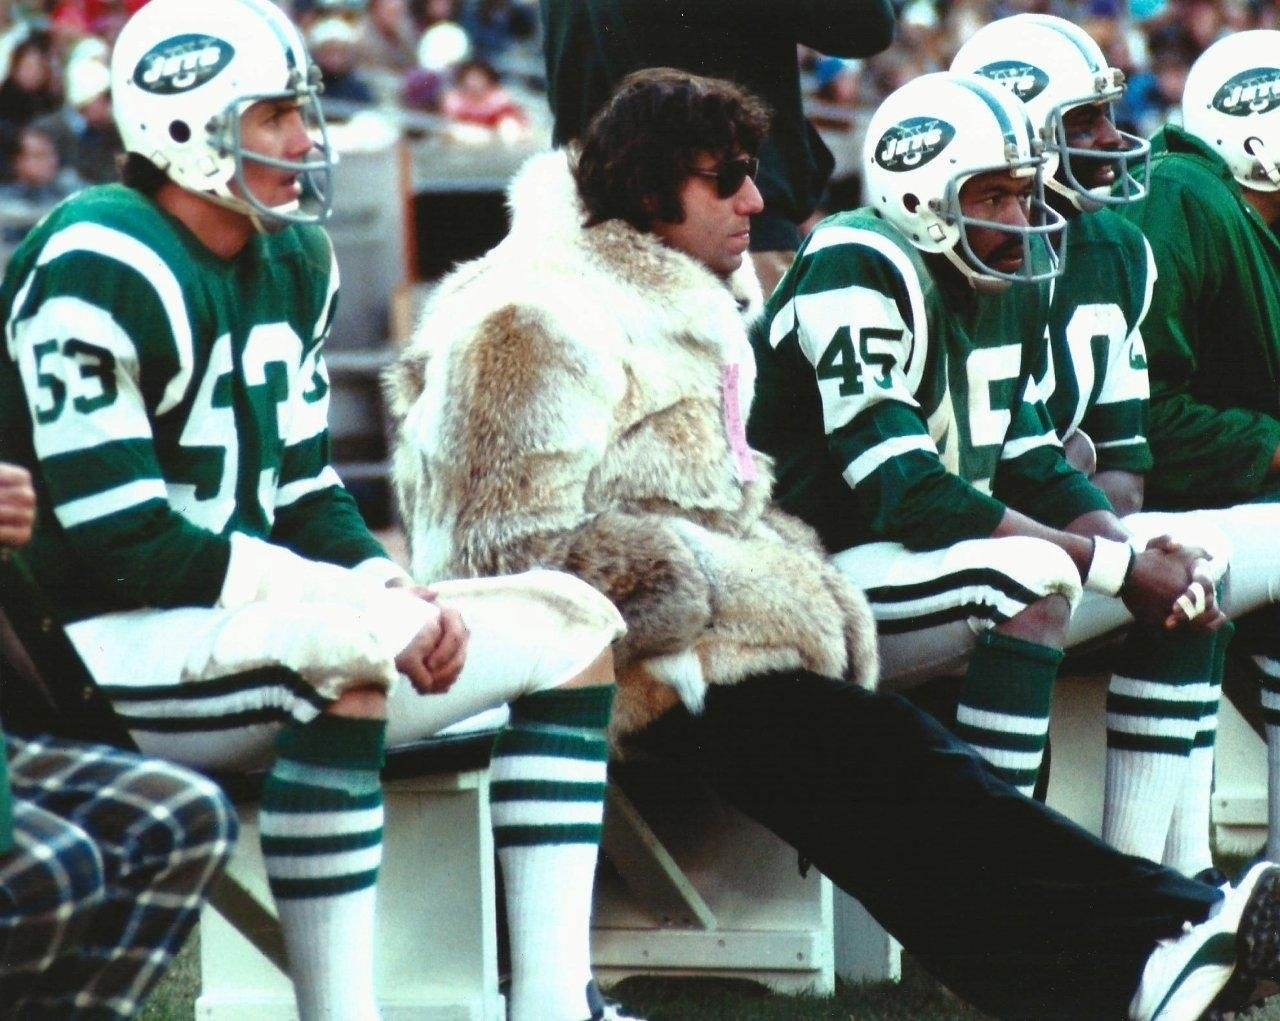 Details About New York Jet Broadway Joe Namath In His regarding Joe Namath Super Bowl